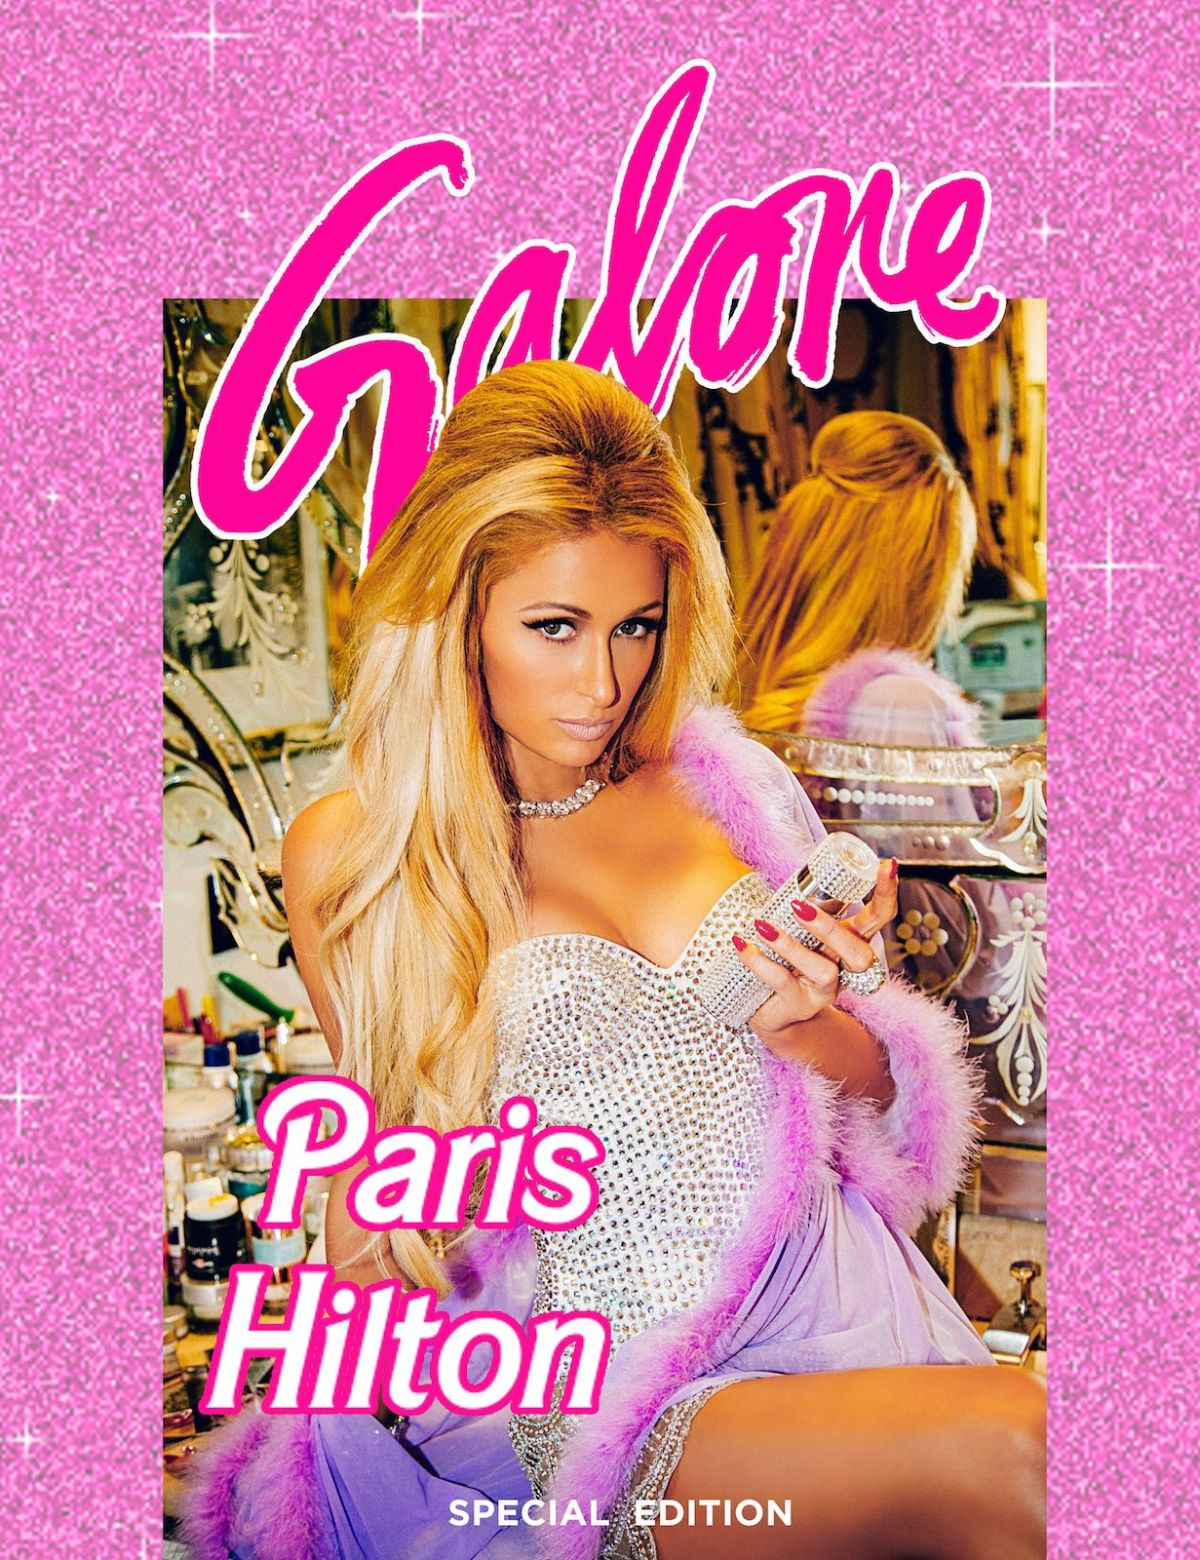 PARIS HILTON for Galore Magazine, September 2017